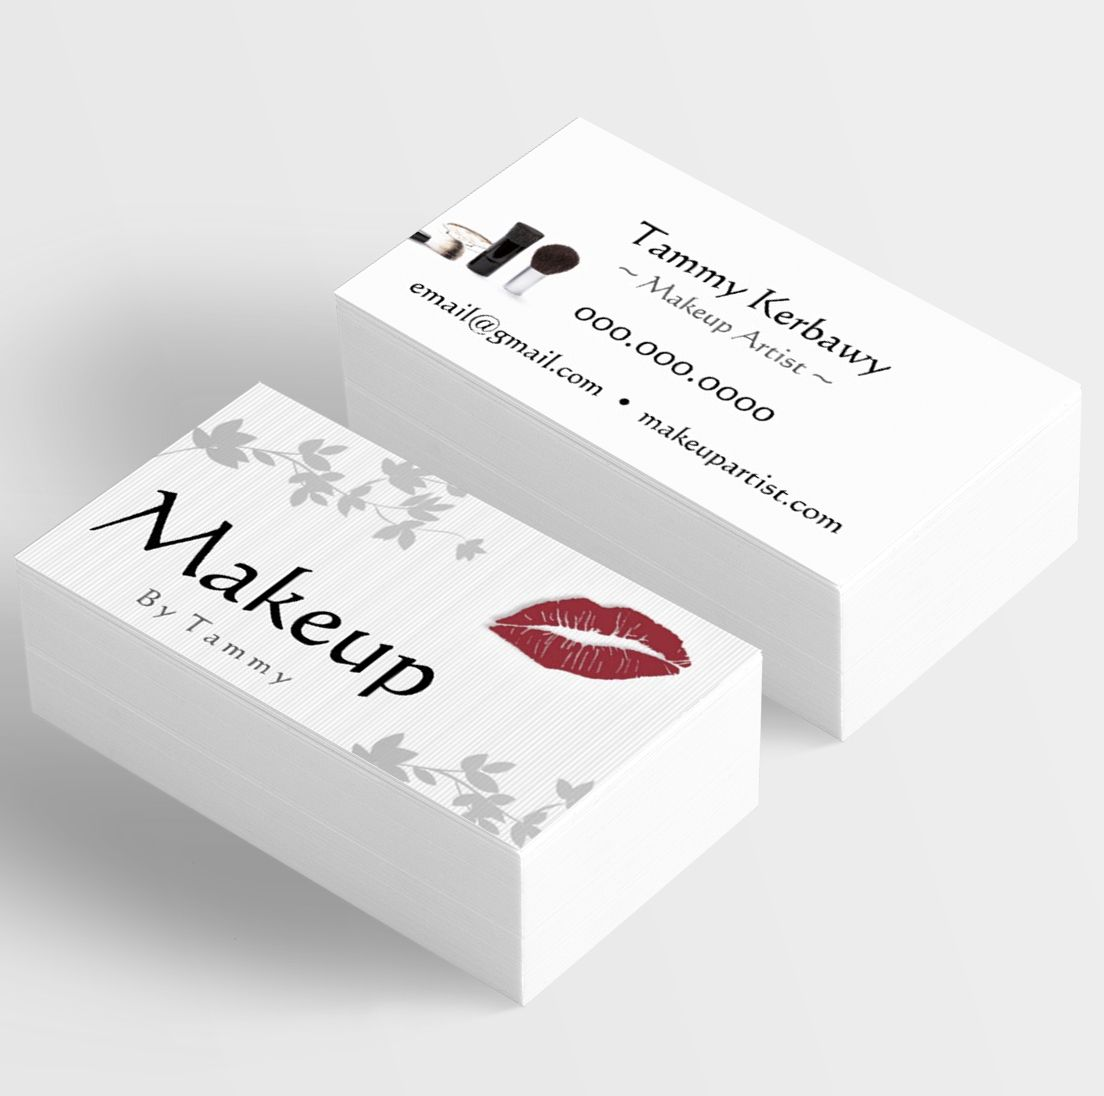 Makeup Artist Business Card Template Kindly Visit Itwvisionscom - Email business card templates